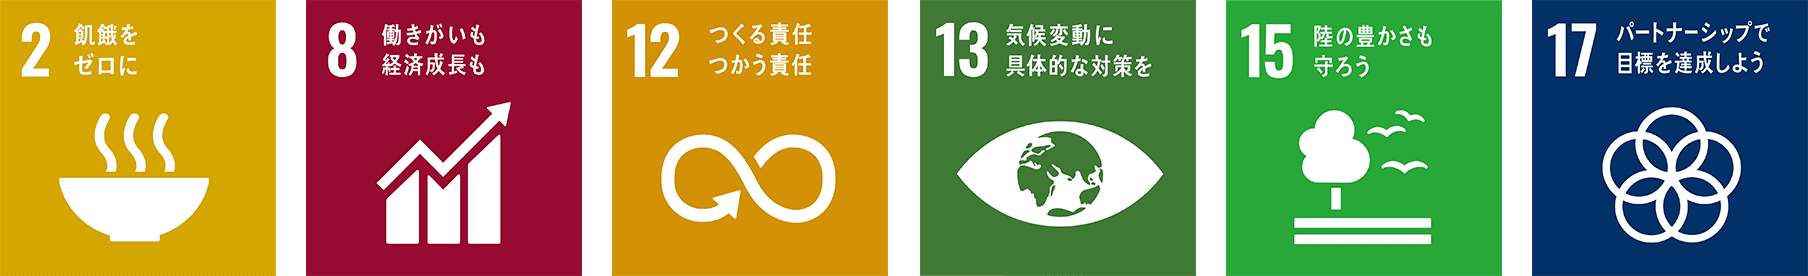 sdgs_goal_icon_list_pc